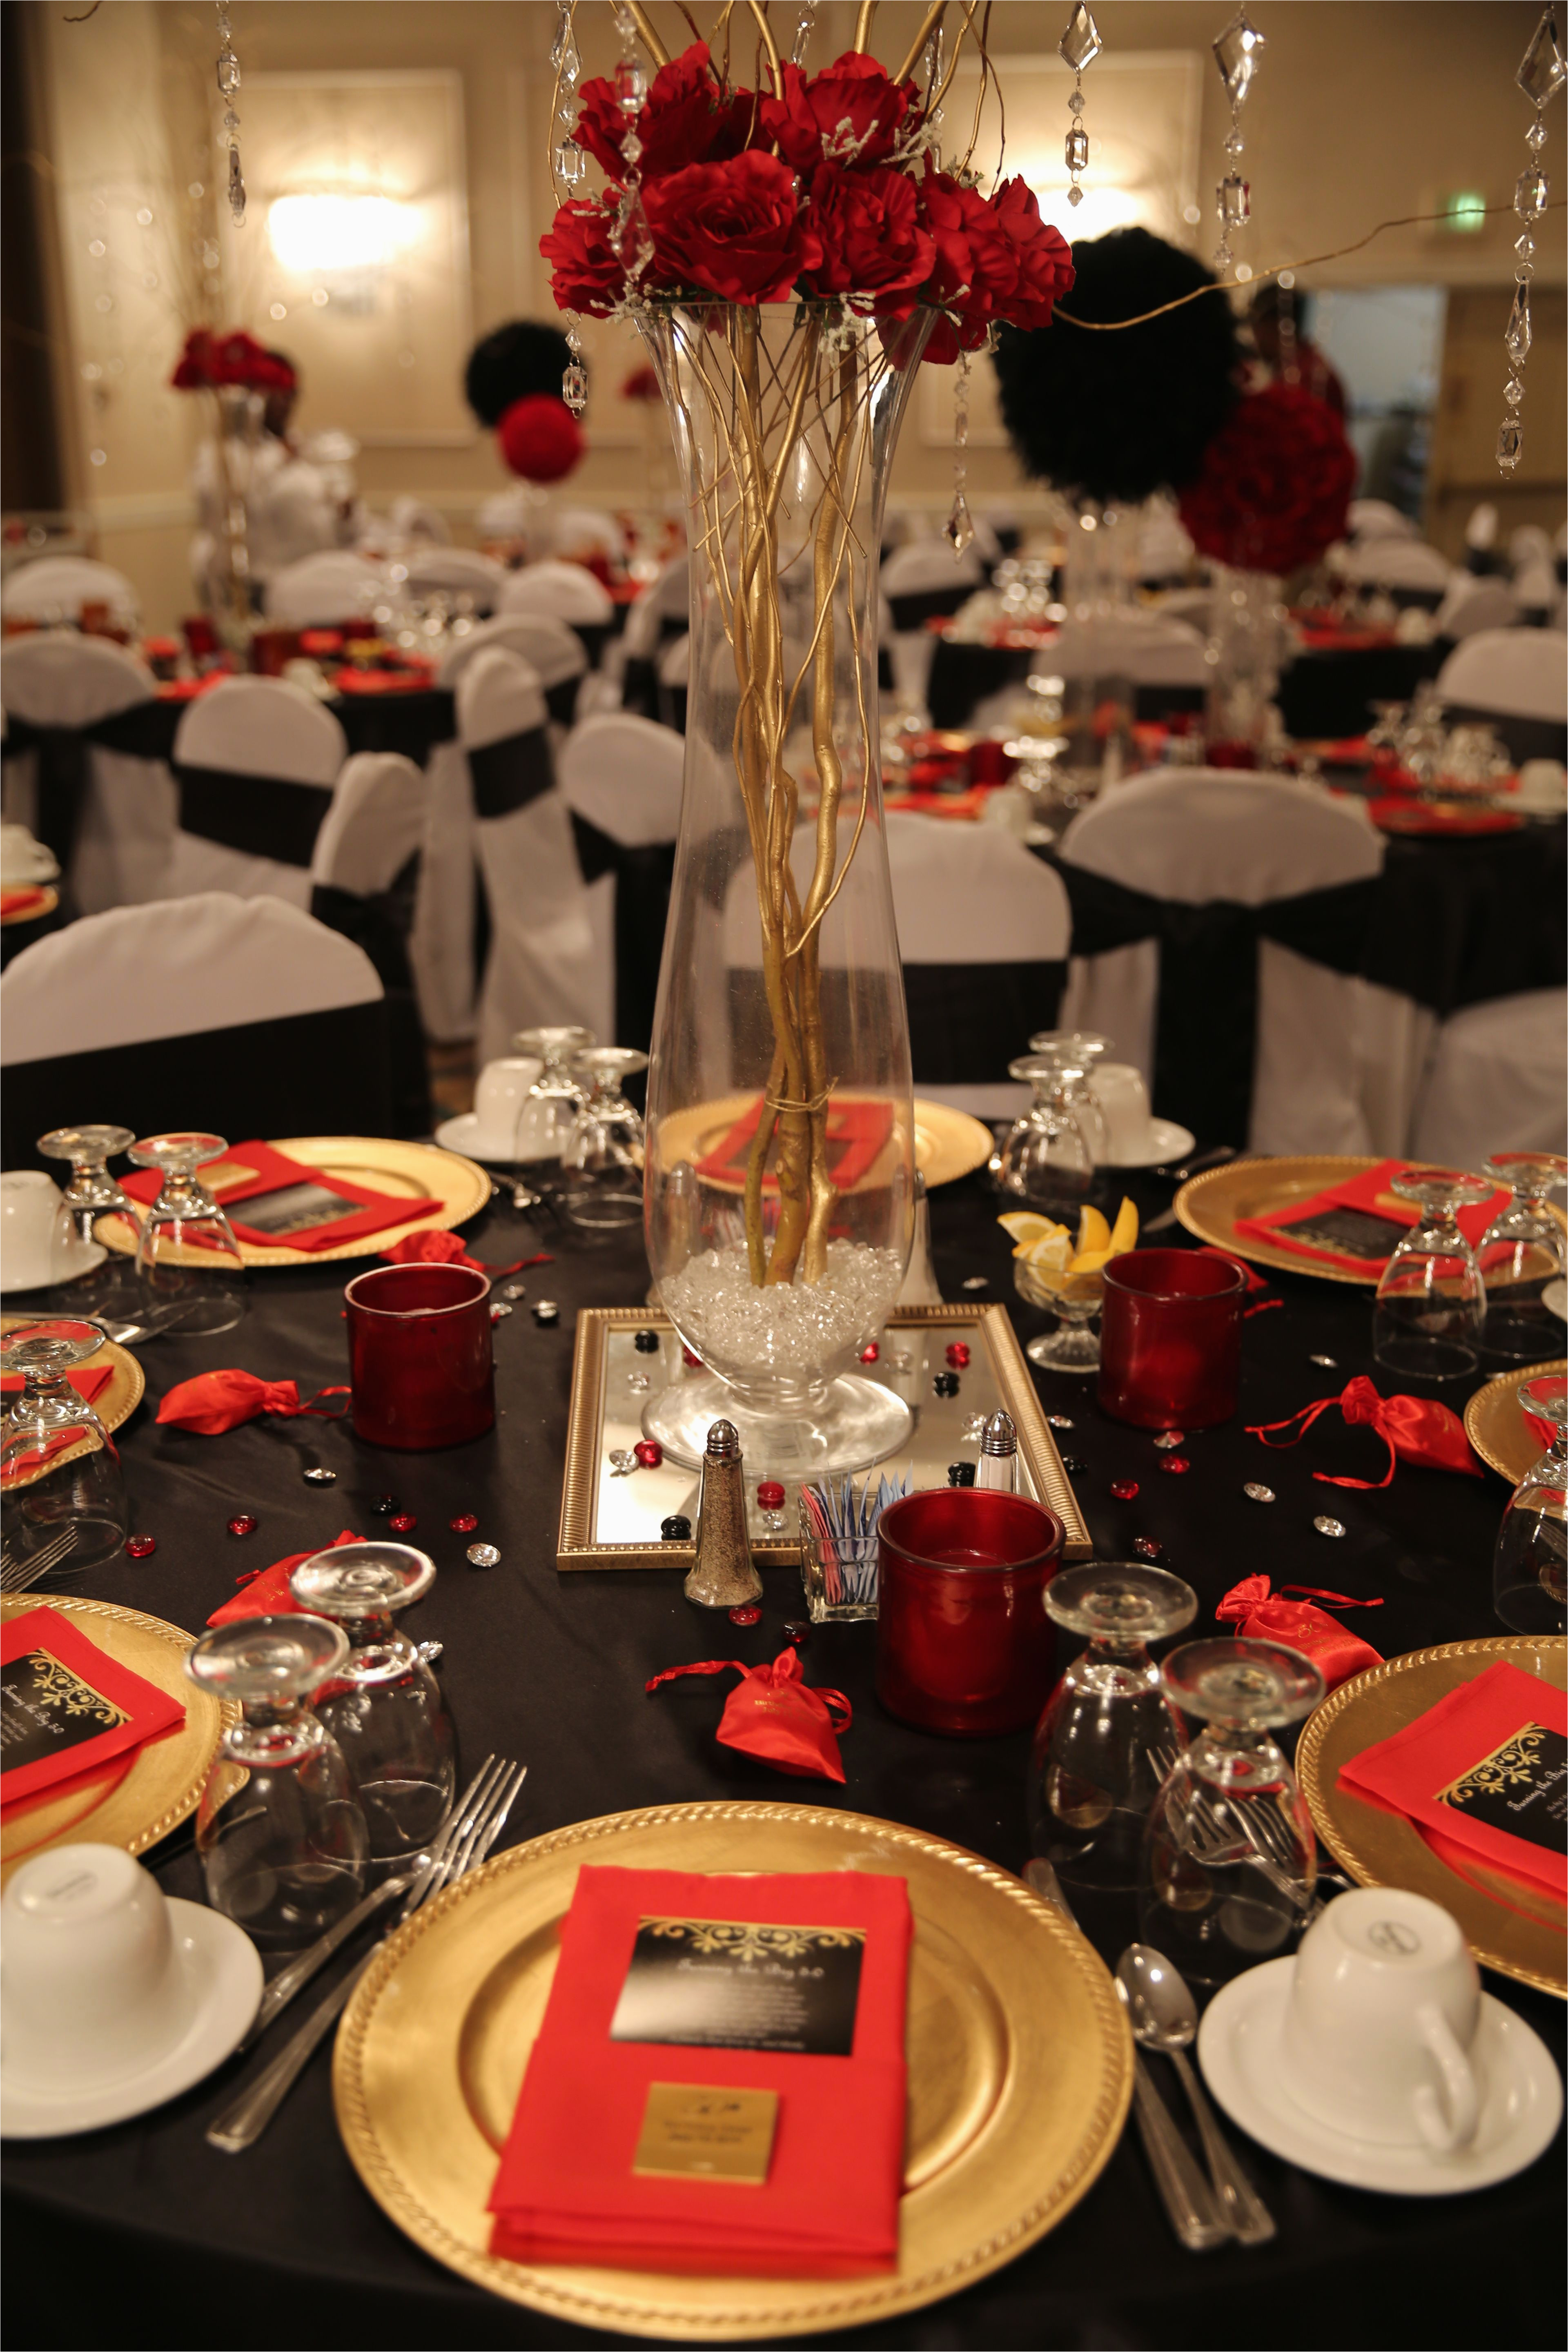 Table Decorations for 50th Birthday Party Red Black and Gold Table Decorations for 50th Birthday